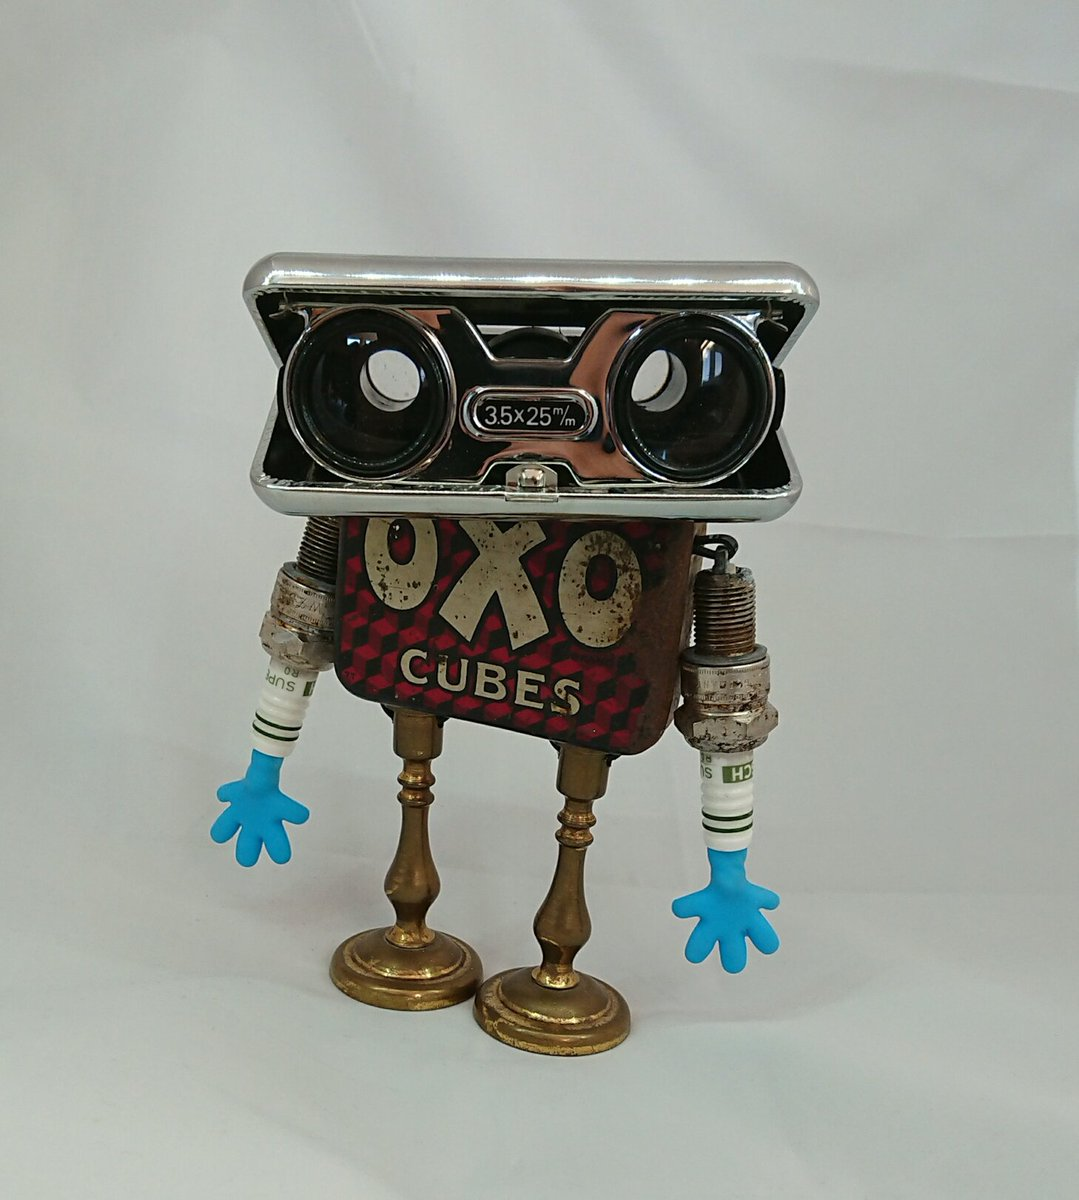 Every office should have a desktop critter. Get yours at https://t.co/SuvPmPDuAc   #giftideas #steampunk #etsy #Robot #handmade #vintage #ValentinesDay #JunkBot  #valentinesdaygifts #giftsforhim #FridayMotivation